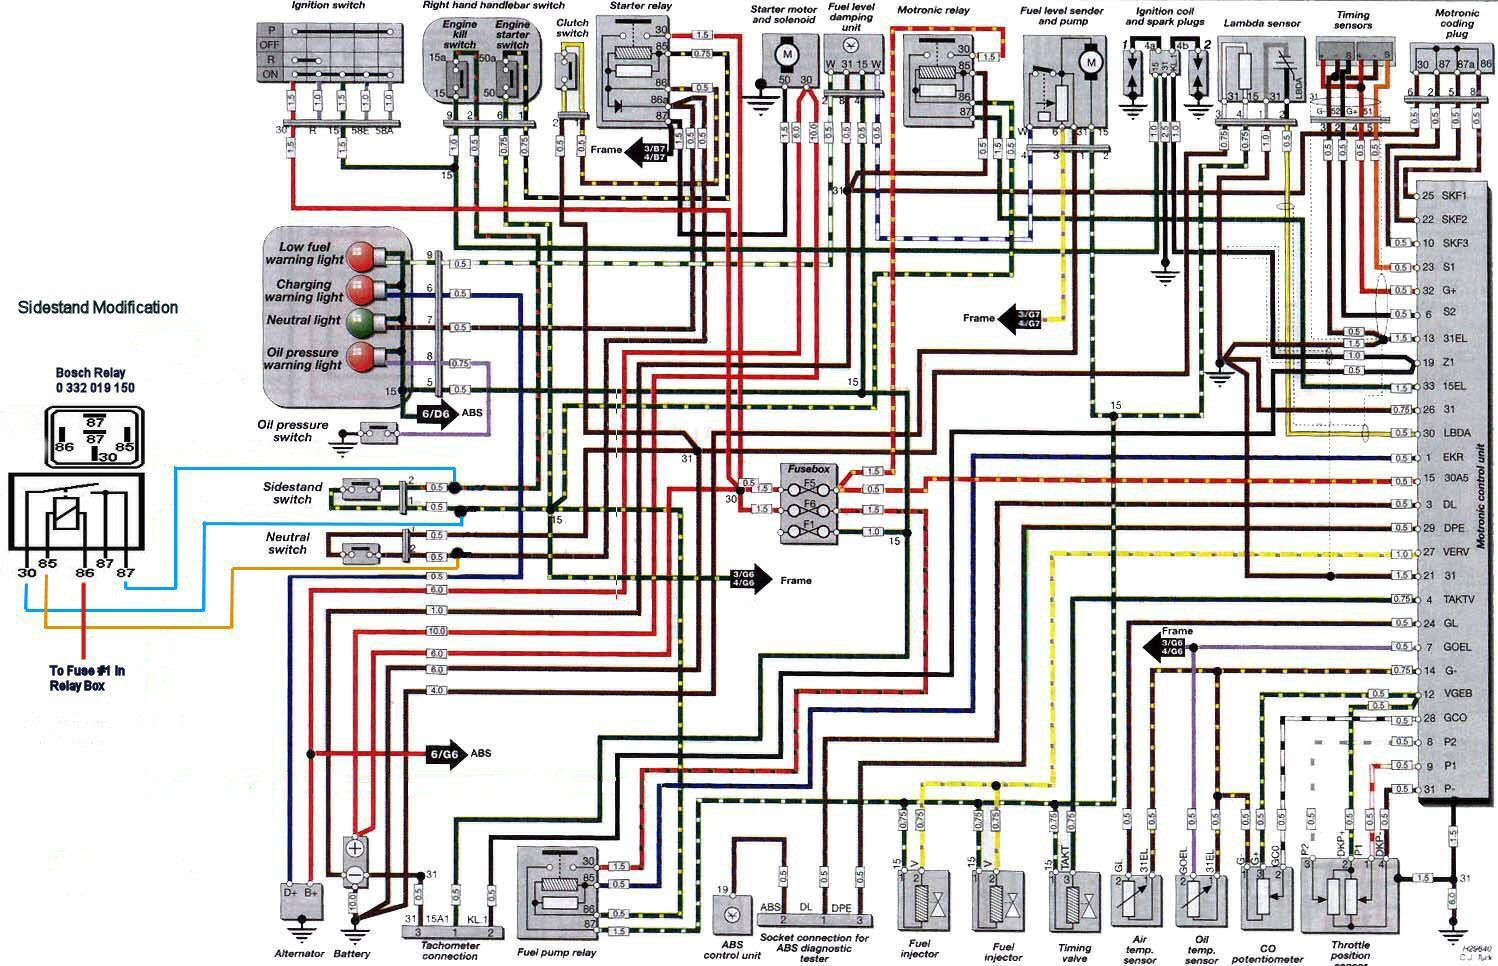 cfa26548fff674929dbaca6a9b06c2b3 bmw r1150r electrical wiring diagram 1 bmv pinterest bmw r100rs gauge wiring diagram at pacquiaovsvargaslive.co